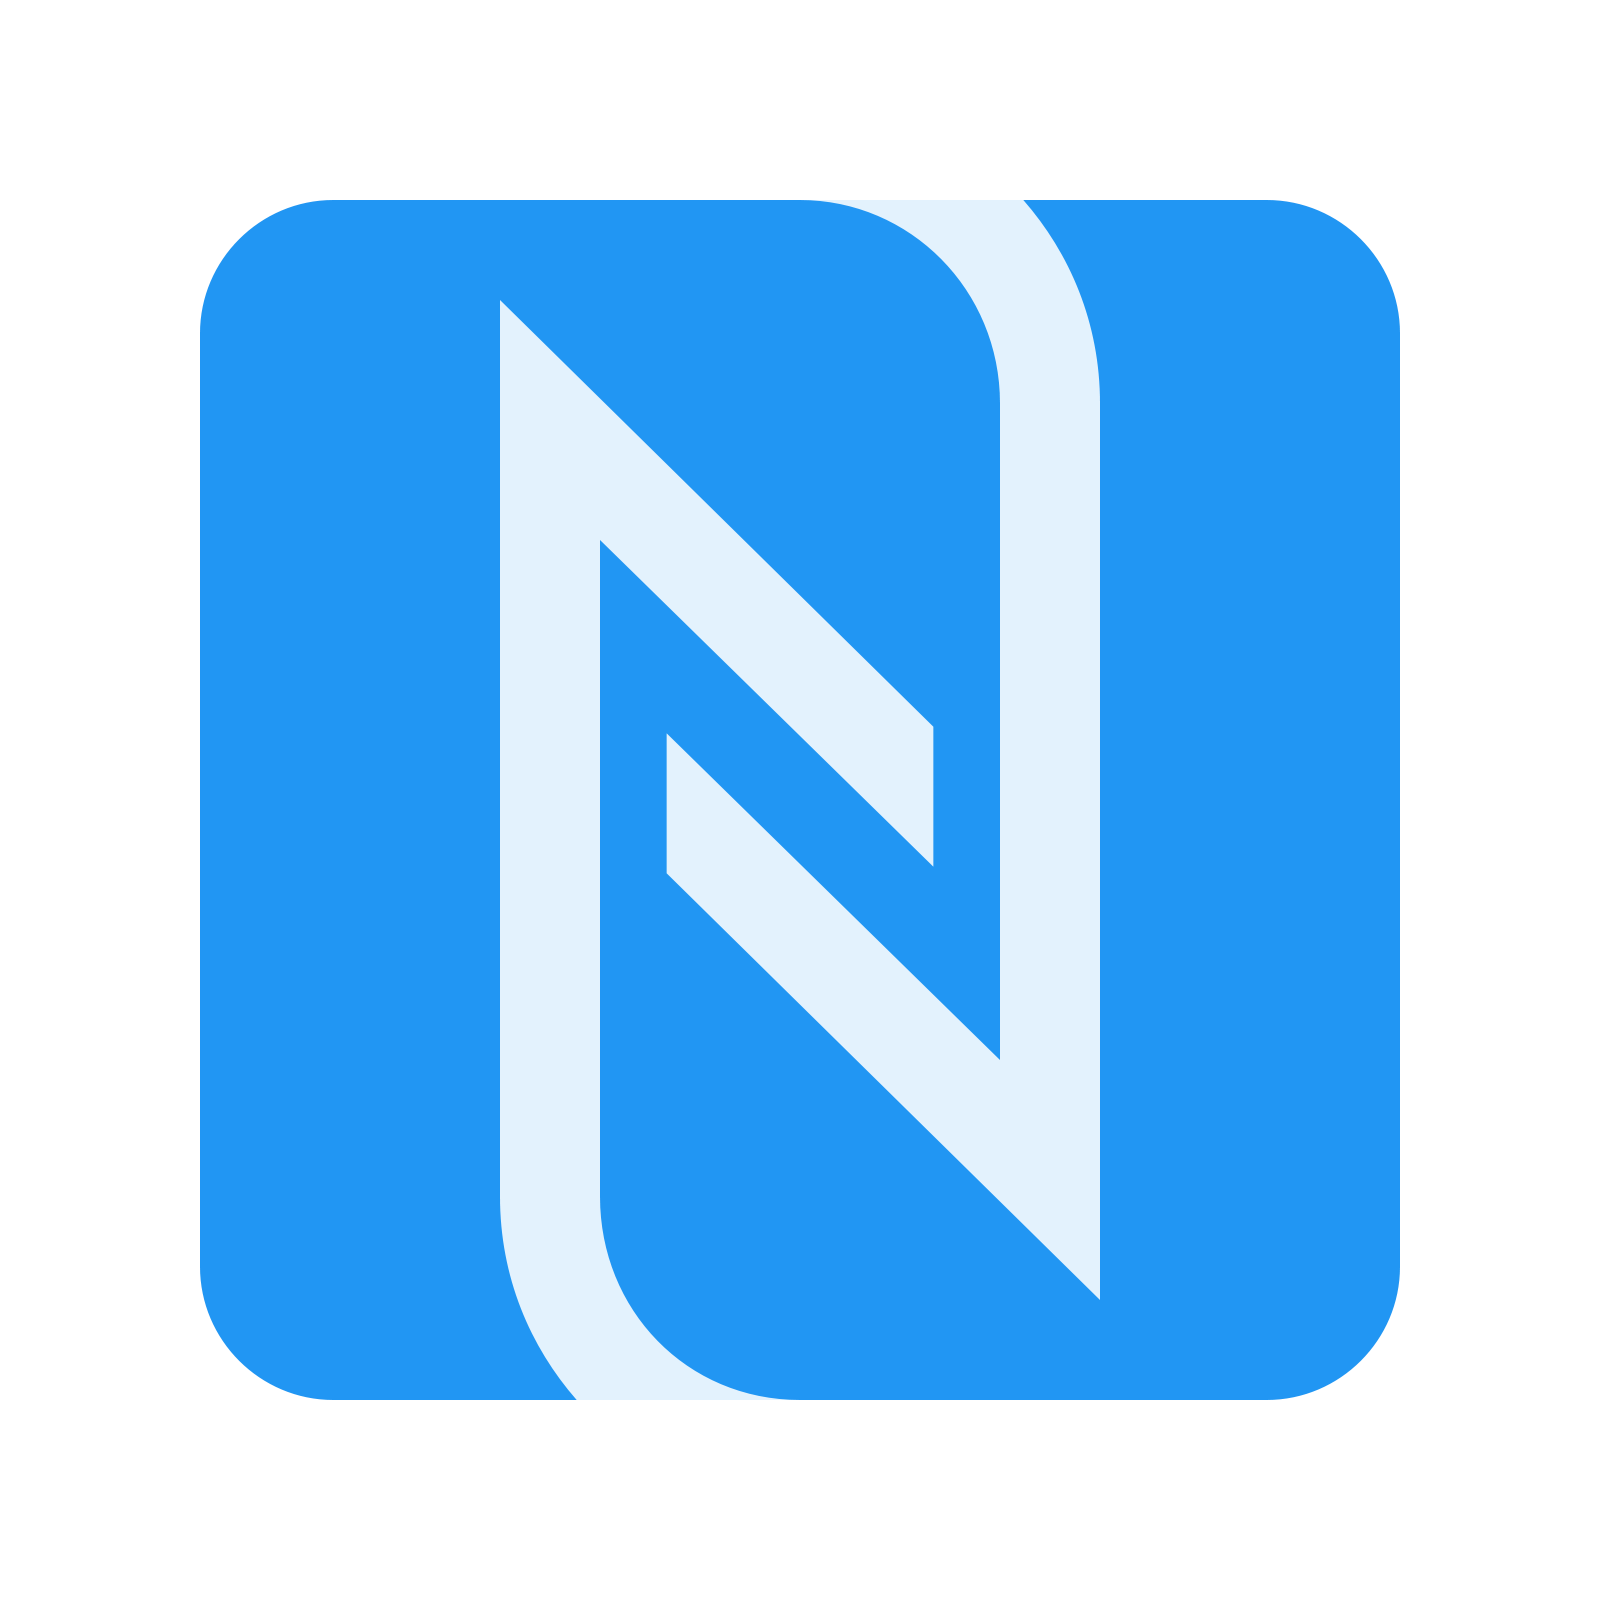 Nfc PNG - 78614